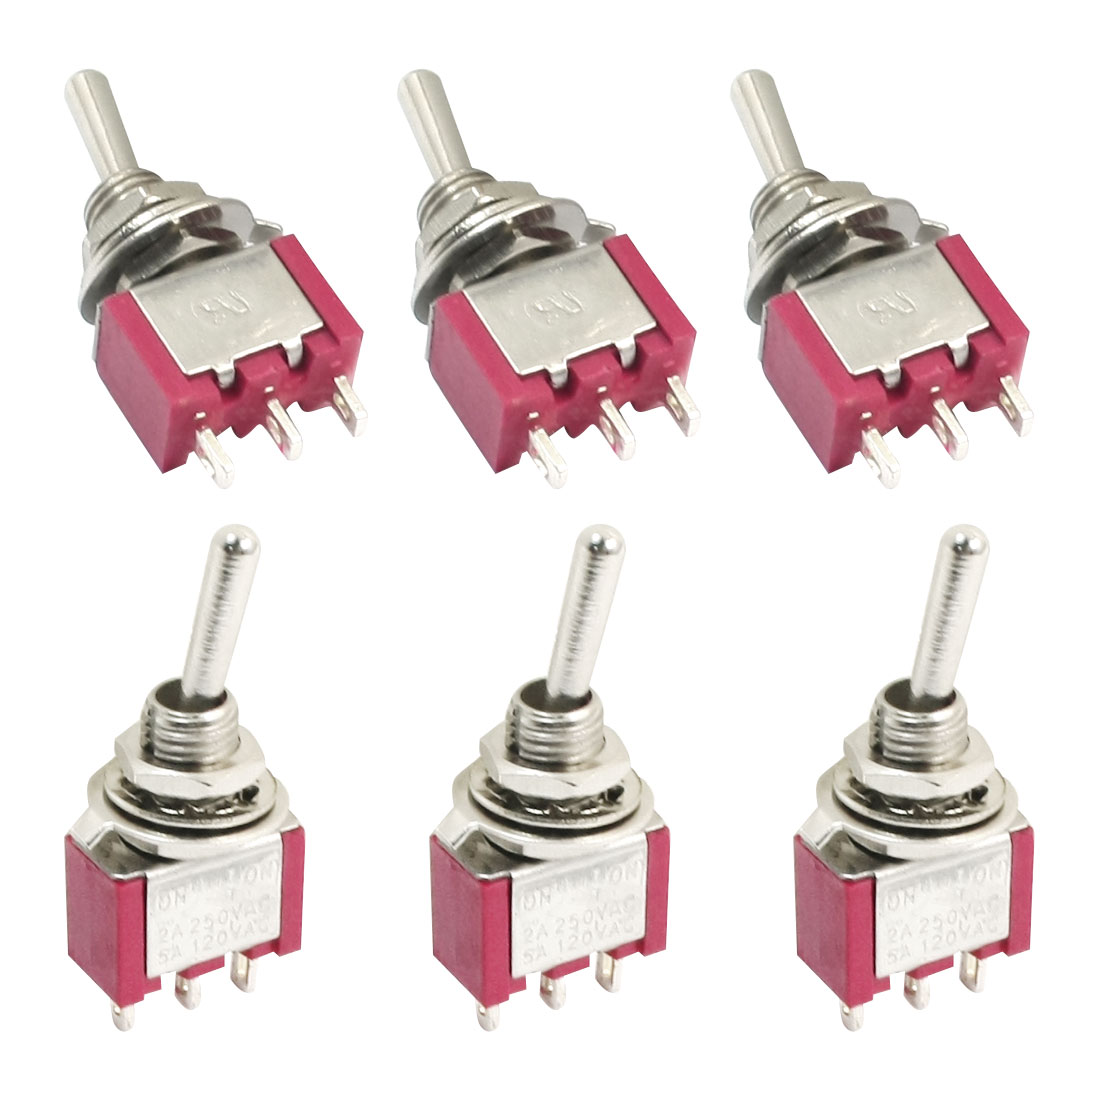 SPDT ON-OFF-ON 3 Position Momentary Electric Toggle Switch AC 120V 5A Red 6pcs